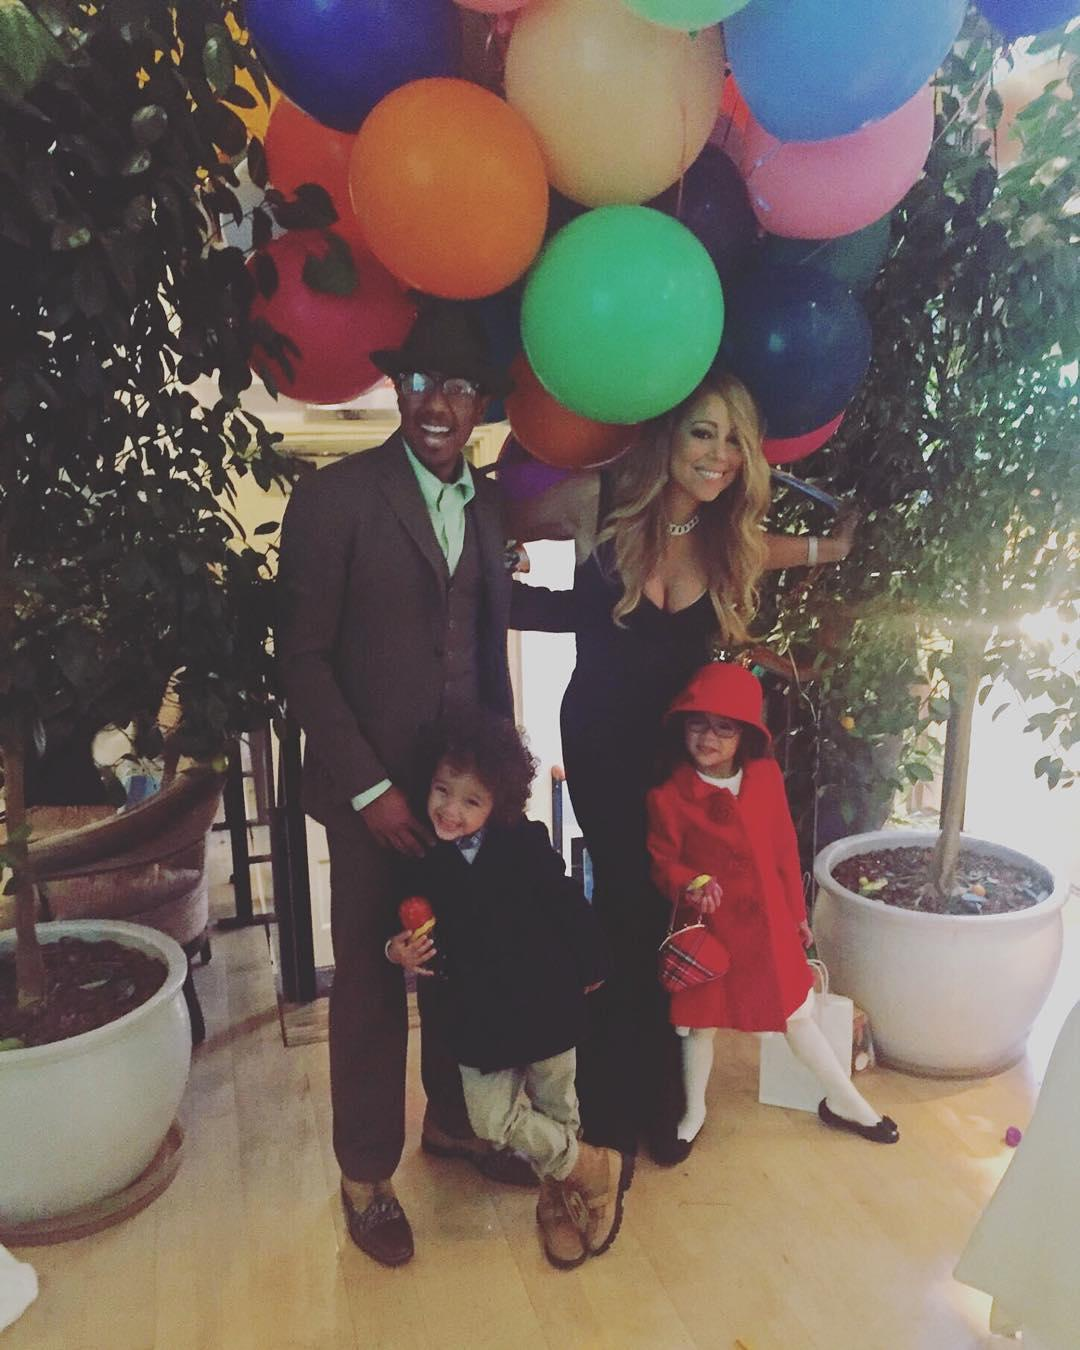 Mariah Carey Spends Thanksgiving With Ex-Husband Nick Cannon